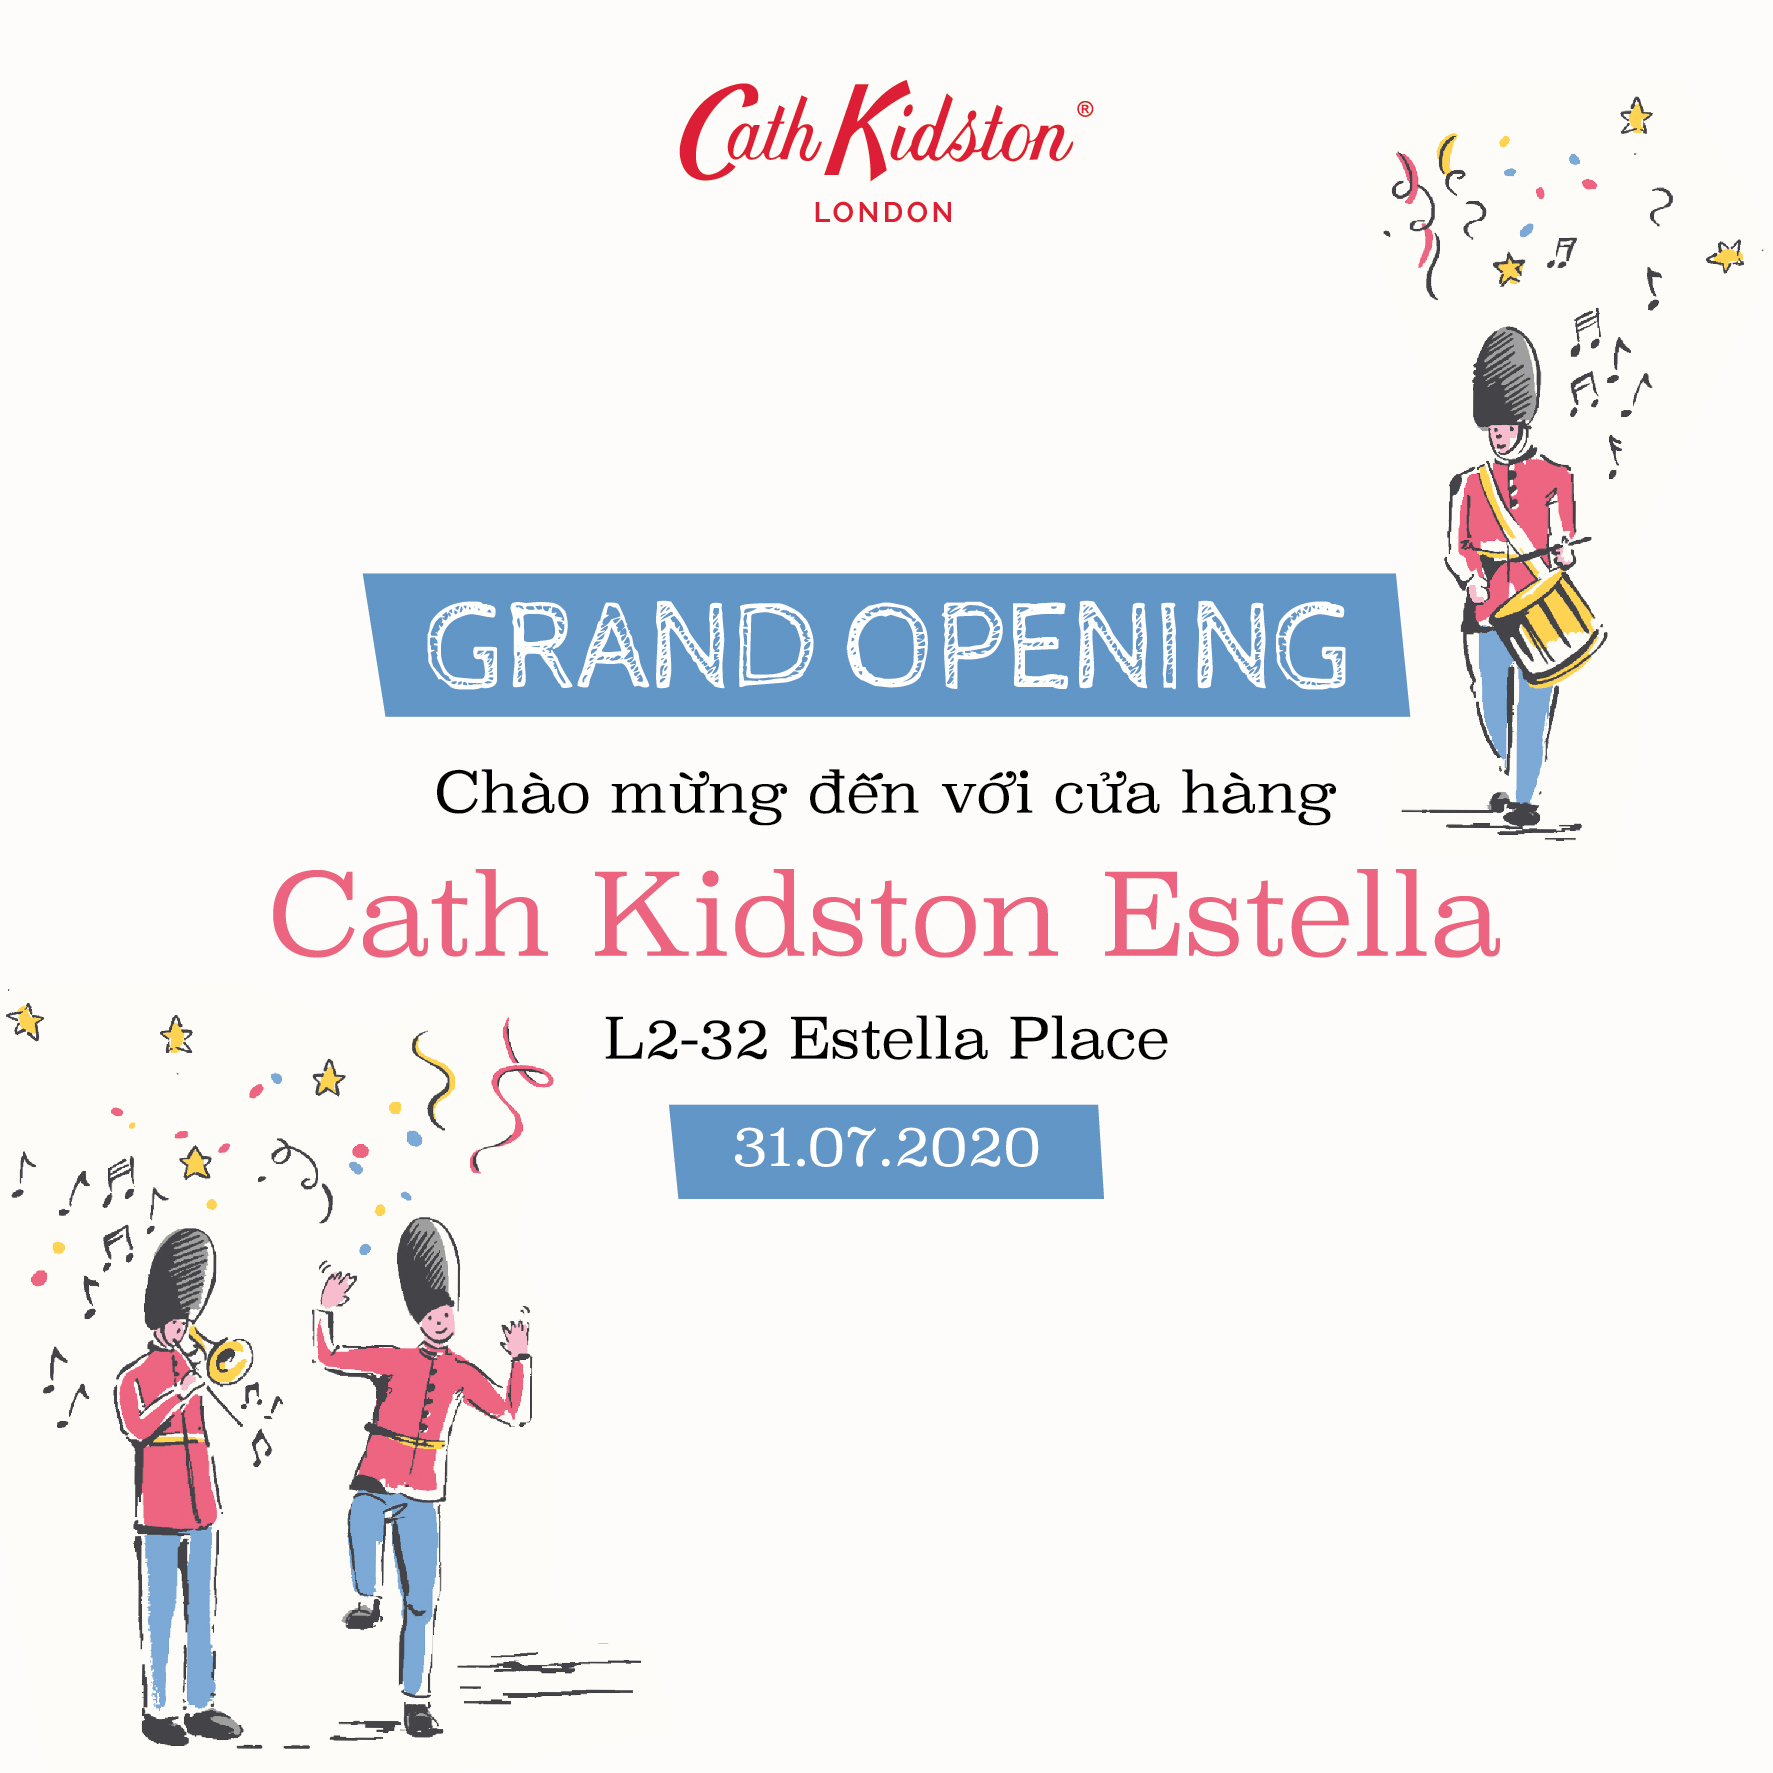 Cath Kidston - Grand Opening